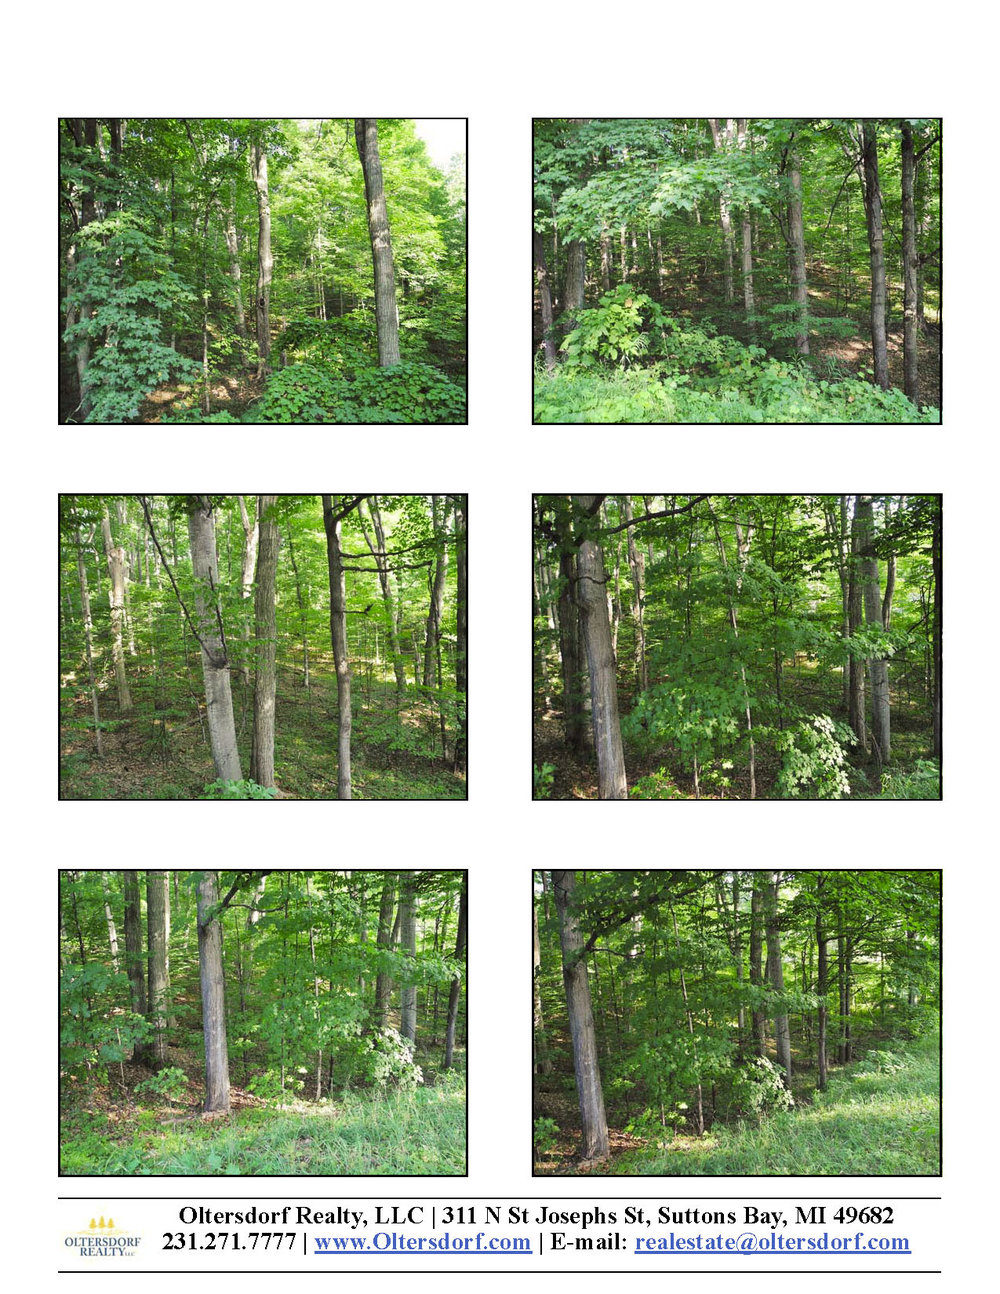 S Bay View Trail Lot 88, Suttons Bay - For Sale by Oltersdorf Realty LLC - Marketing Packet (2).jpg